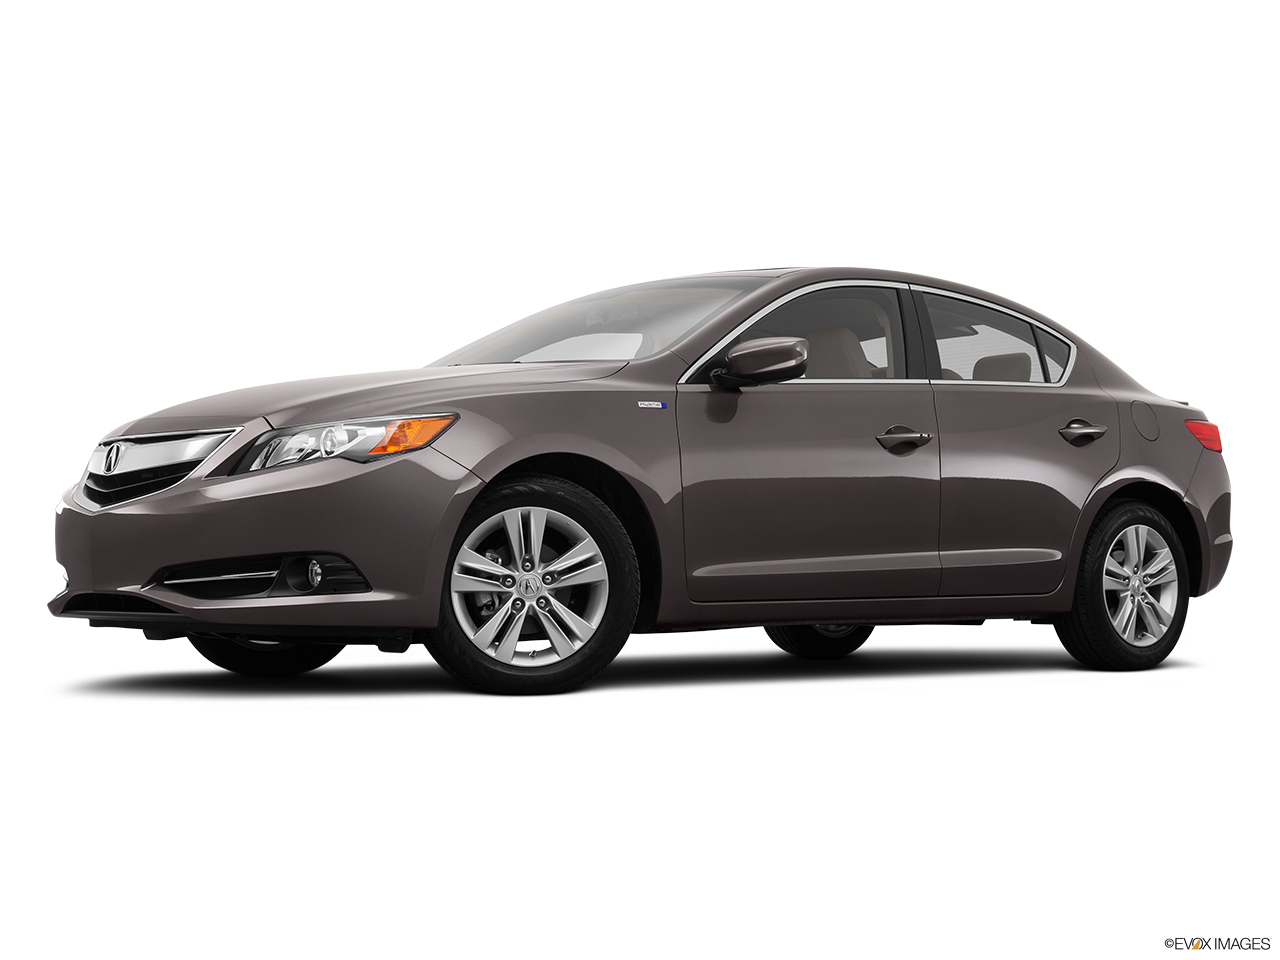 2014 Acura ILX Hybrid Base Low/wide front 5/8.